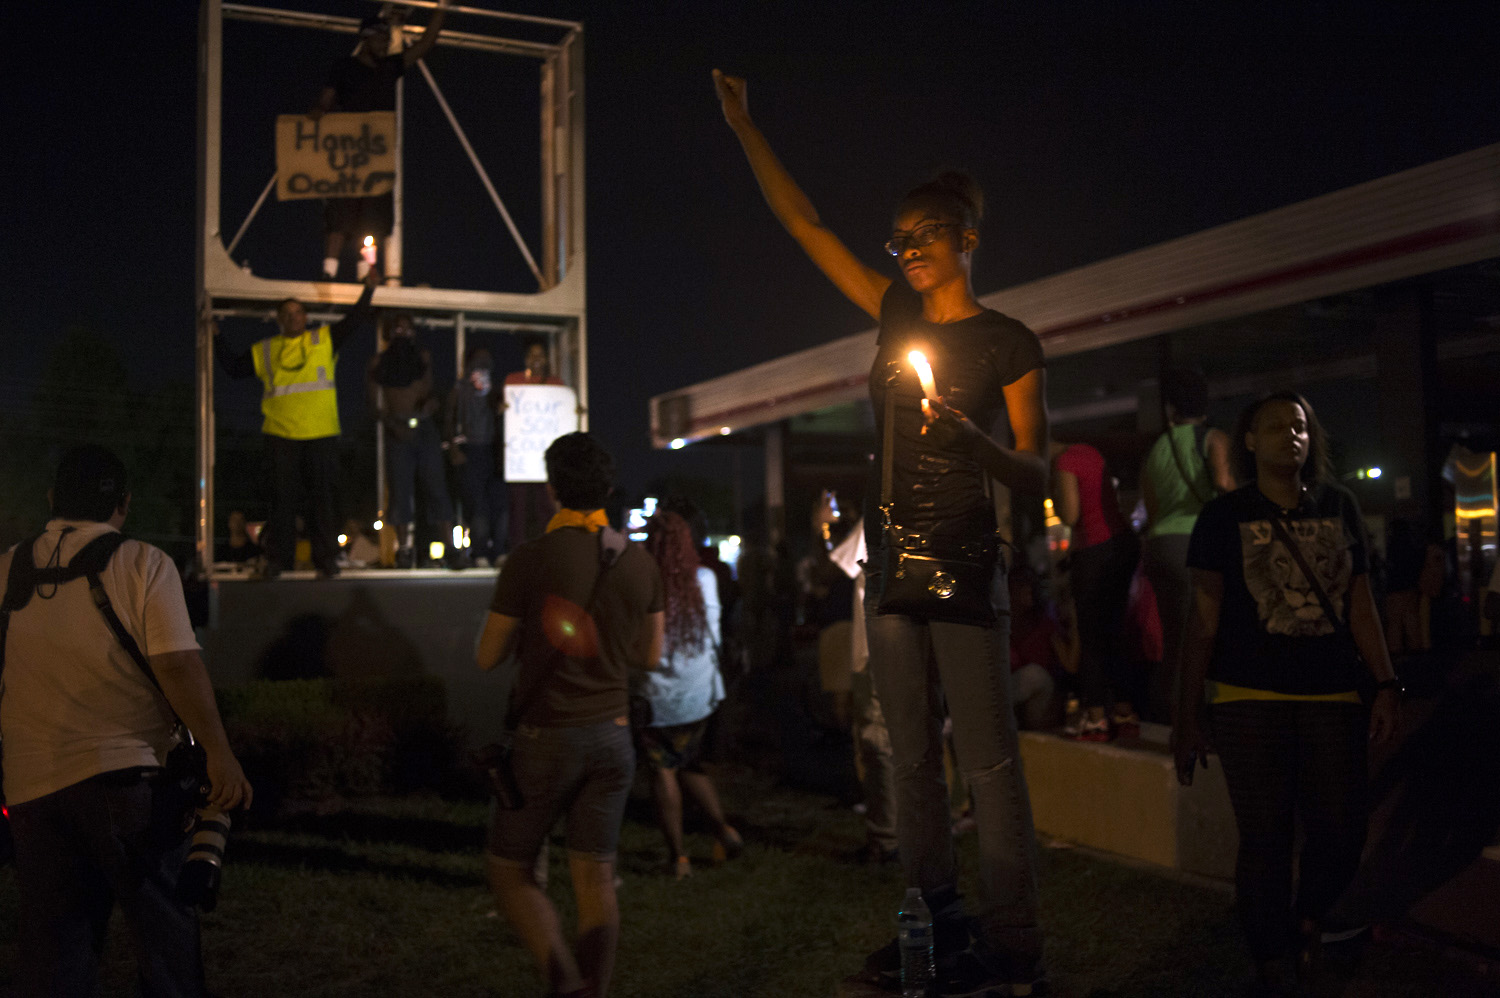 After several days of violent protests and intense confrontations between local police  and protestors, the police decided to pull back and allow the protestors to march peacefully and protest, Ferguson, Mo., Aug. 14, 2014.